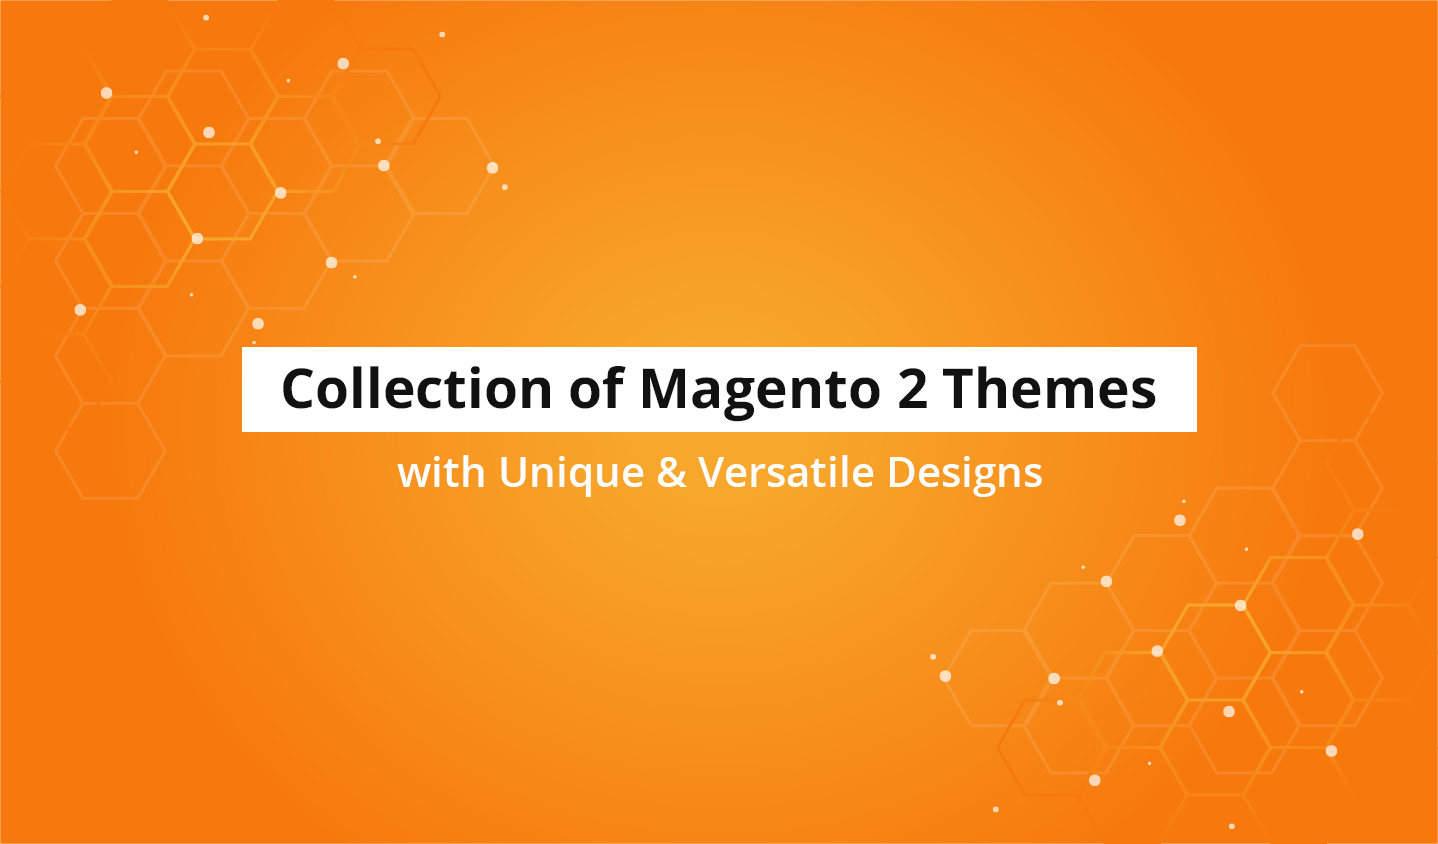 Collection of Magento 2 Themes